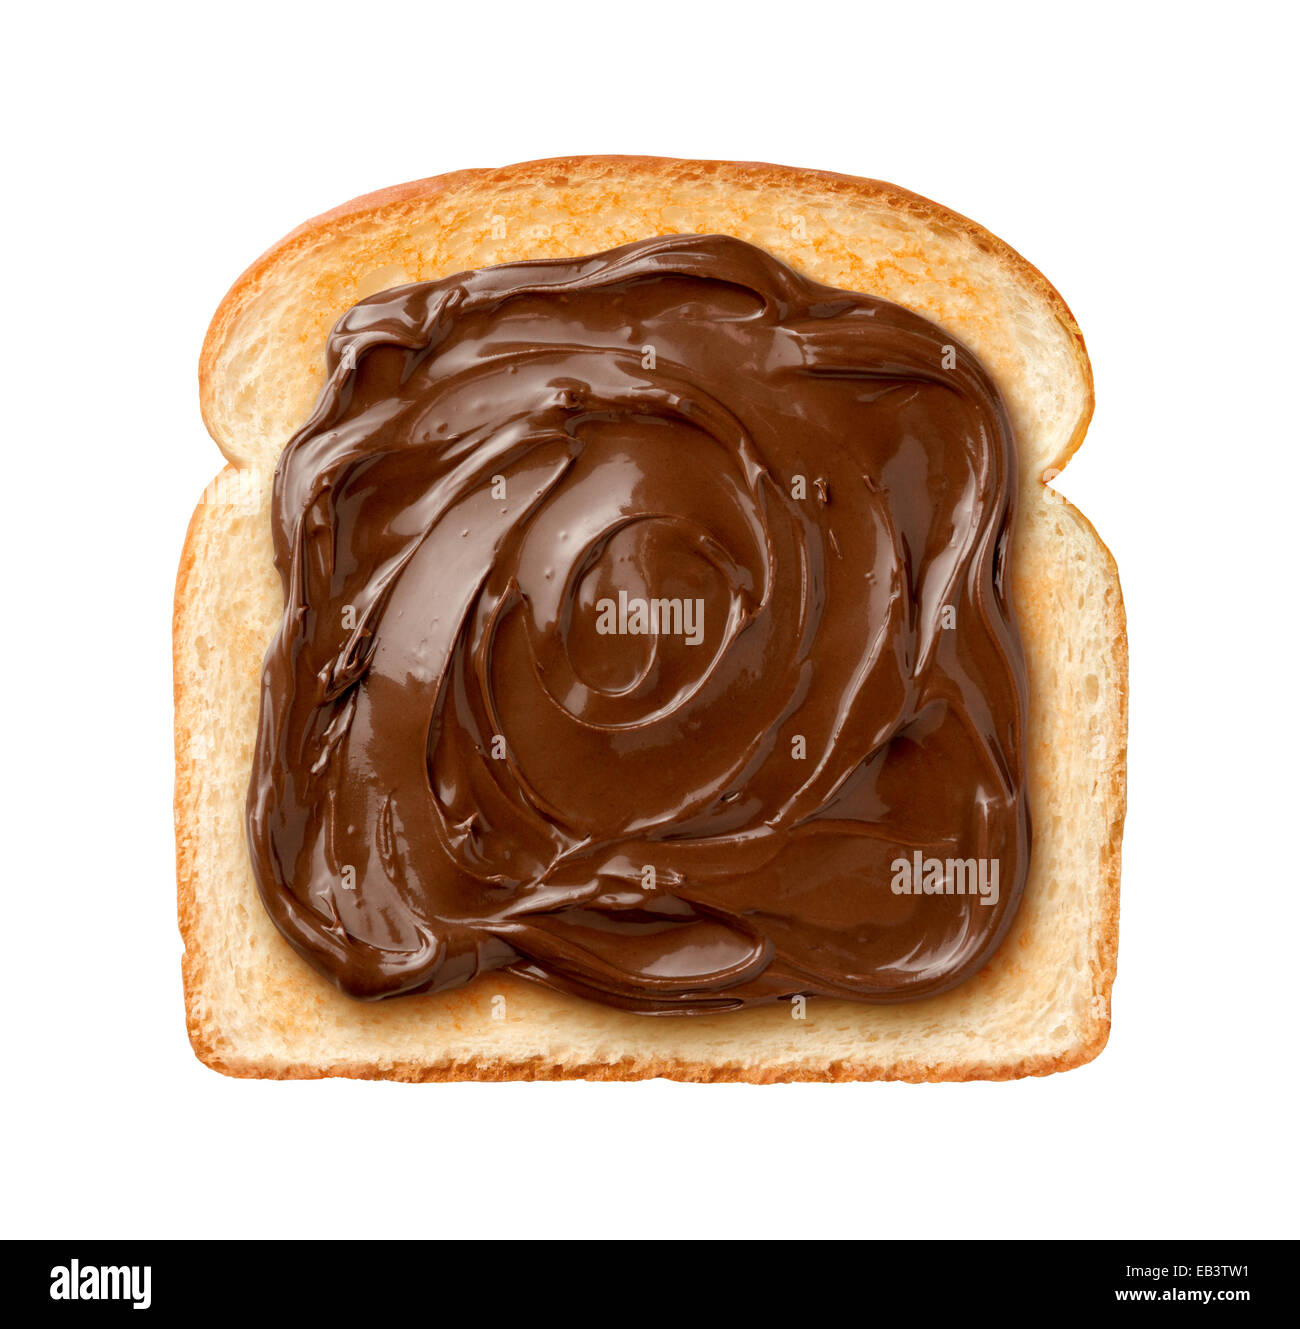 Aerial view of Chocolate Spread on a single slice of Toast. Isolated on a white background - Stock Image